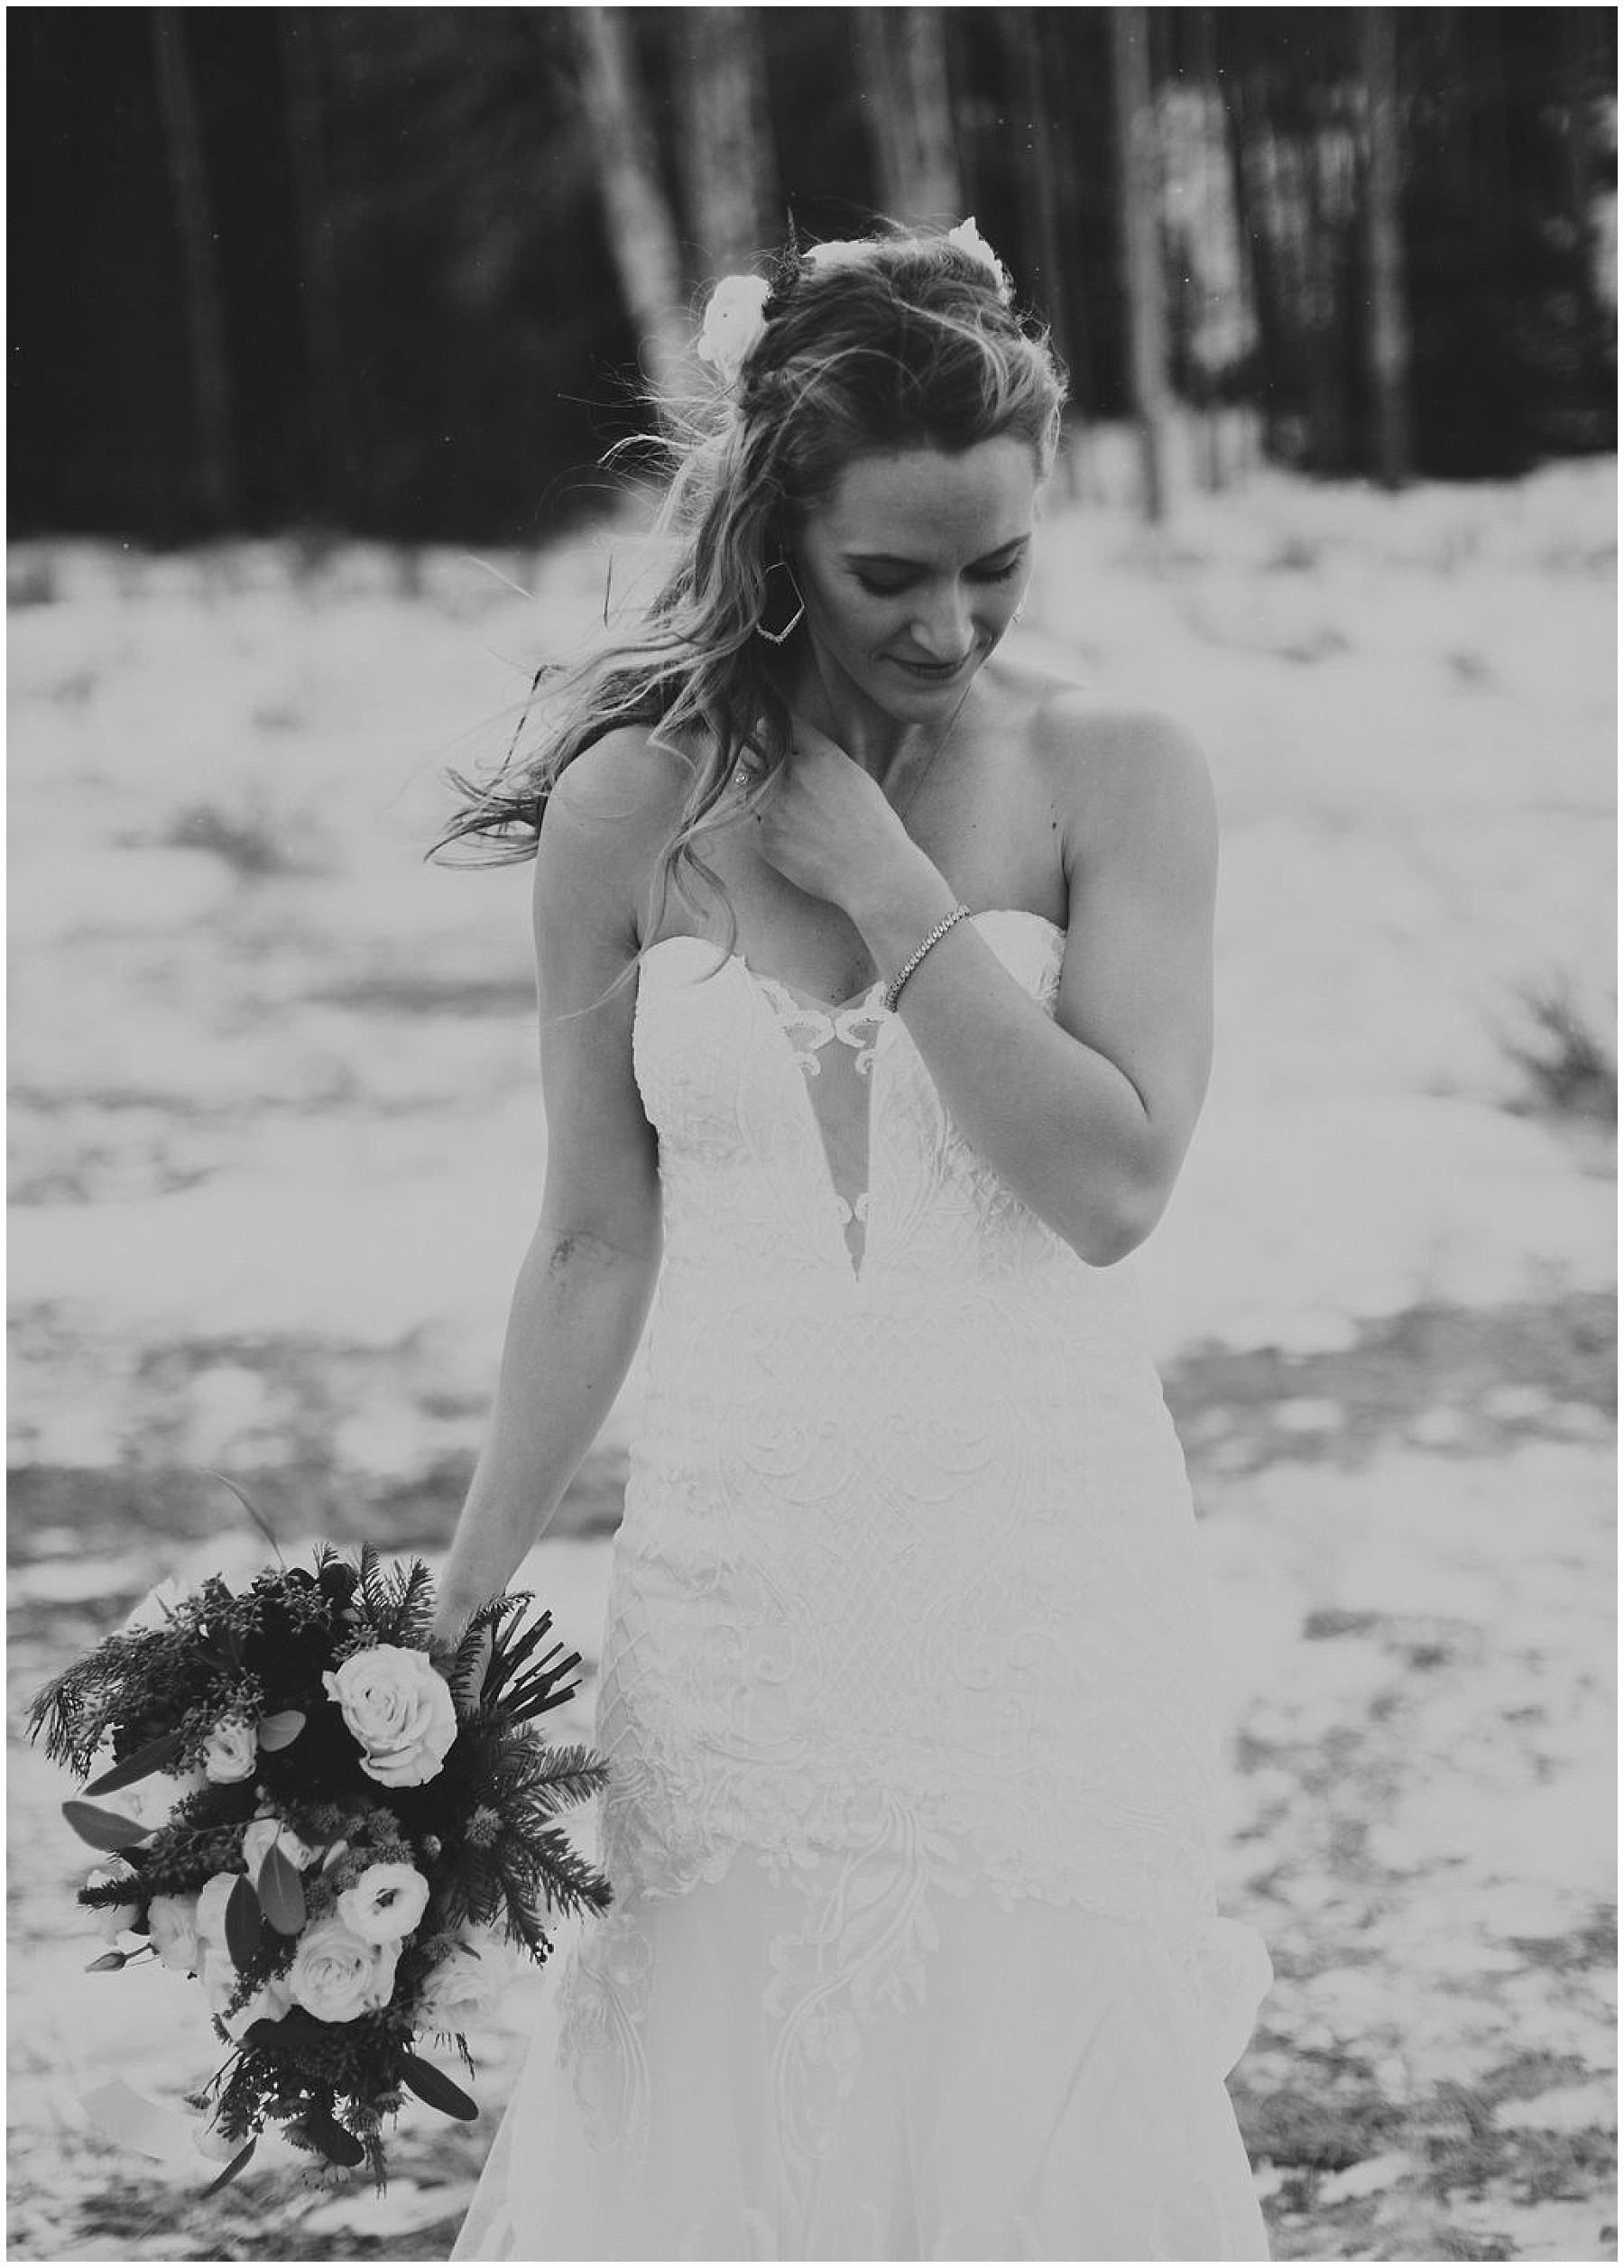 Katesalleyphotography-240_Haley and Dan get married in Estes Park.jpg